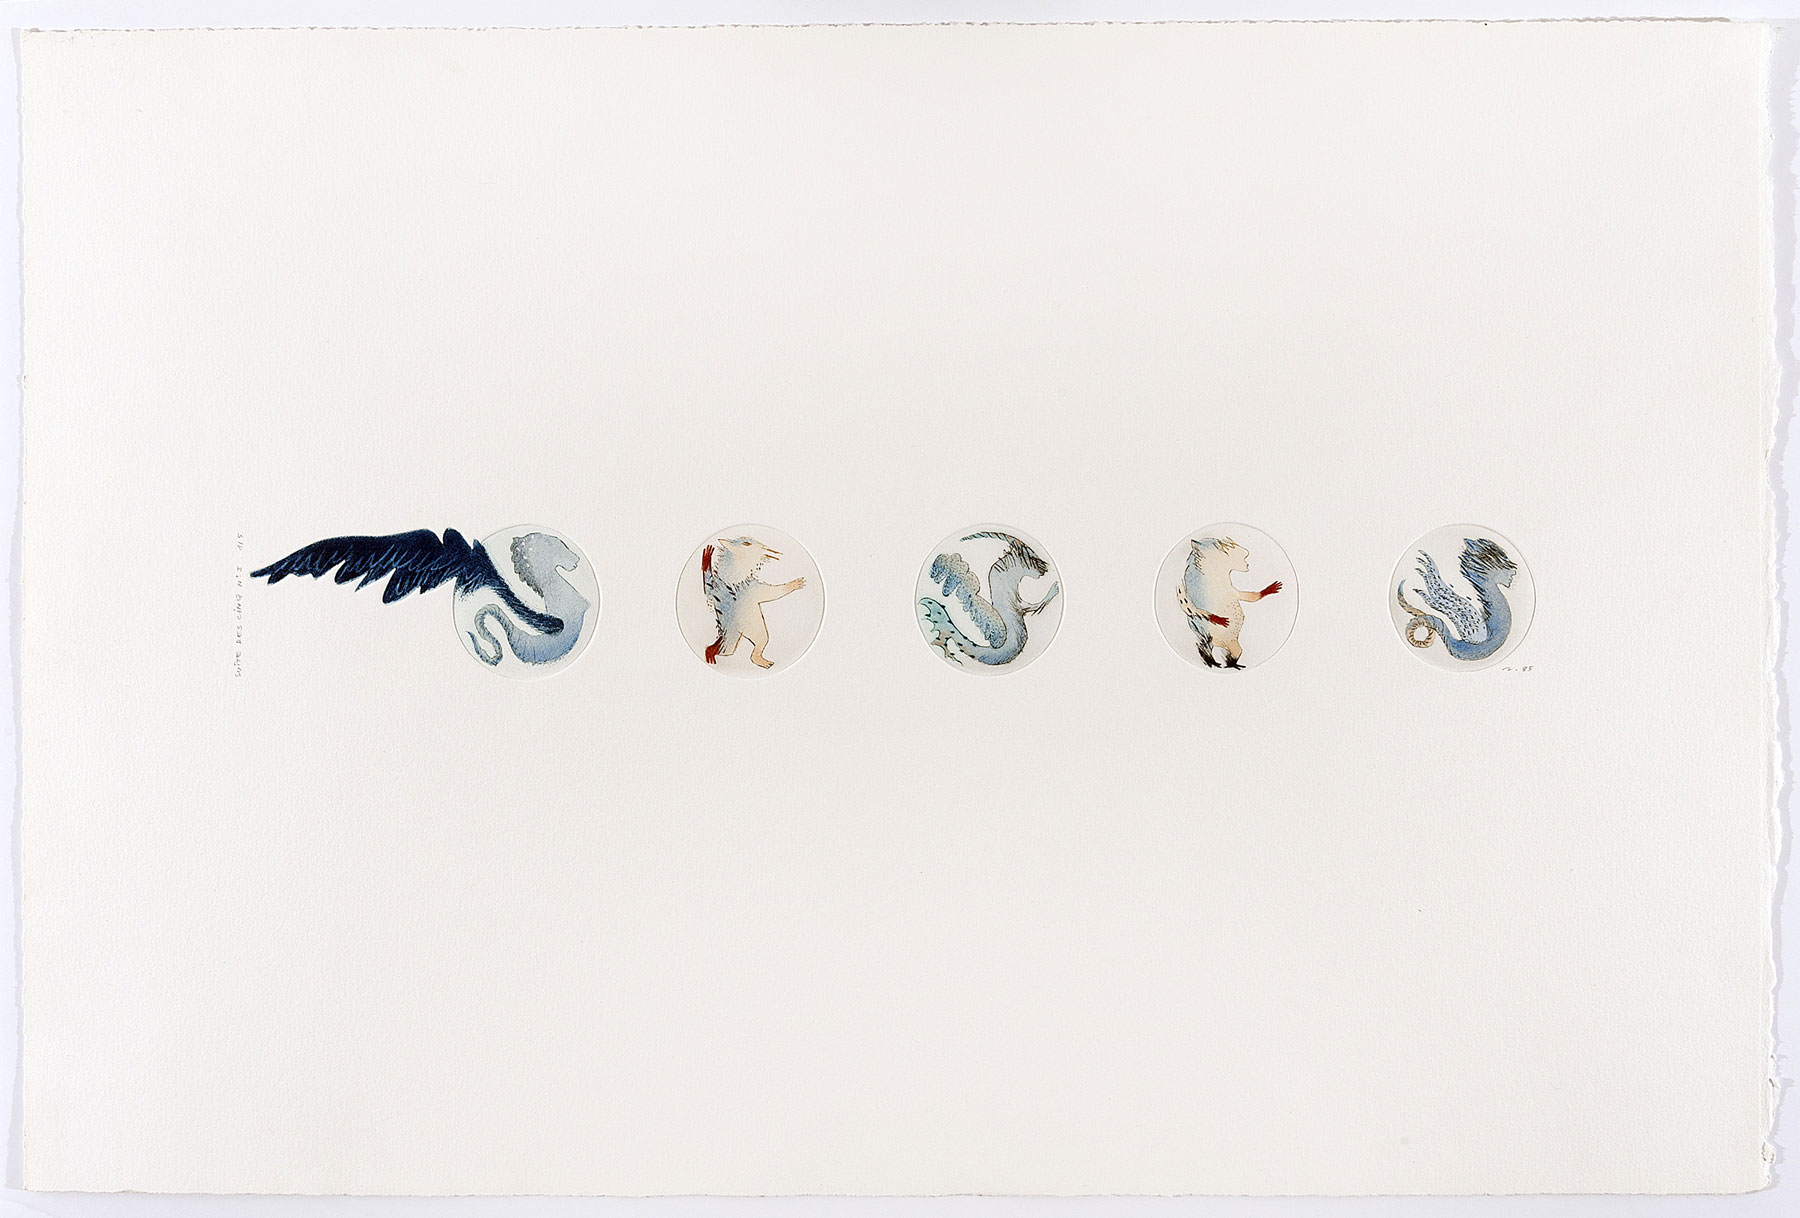 Anne Petrequin, Suite des cinq, n° I, II, III, IV, V, 1985. Collection macLYON